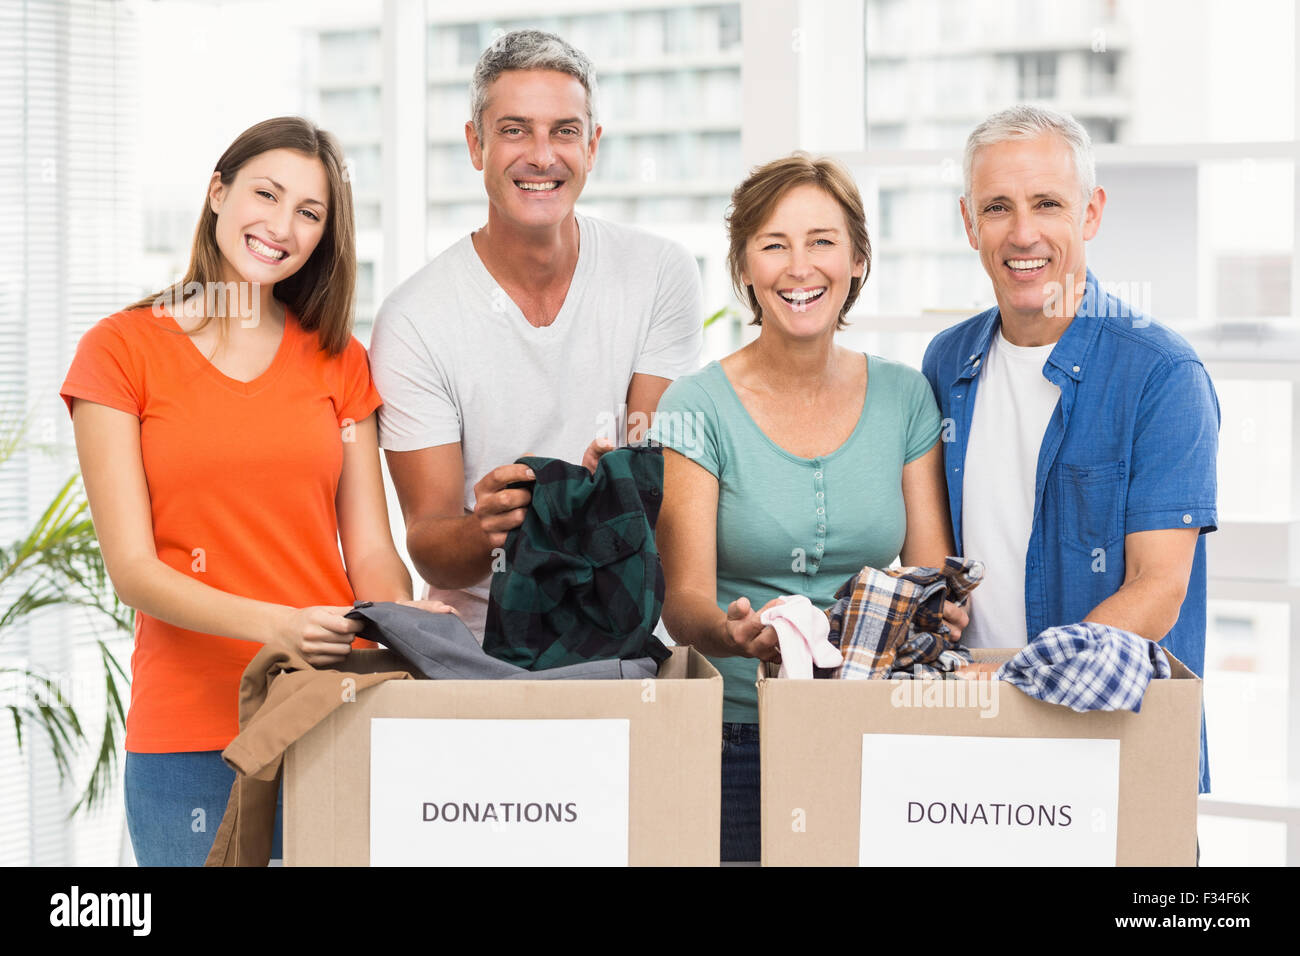 Smiling casual business people sorting donation boxes - Stock Image